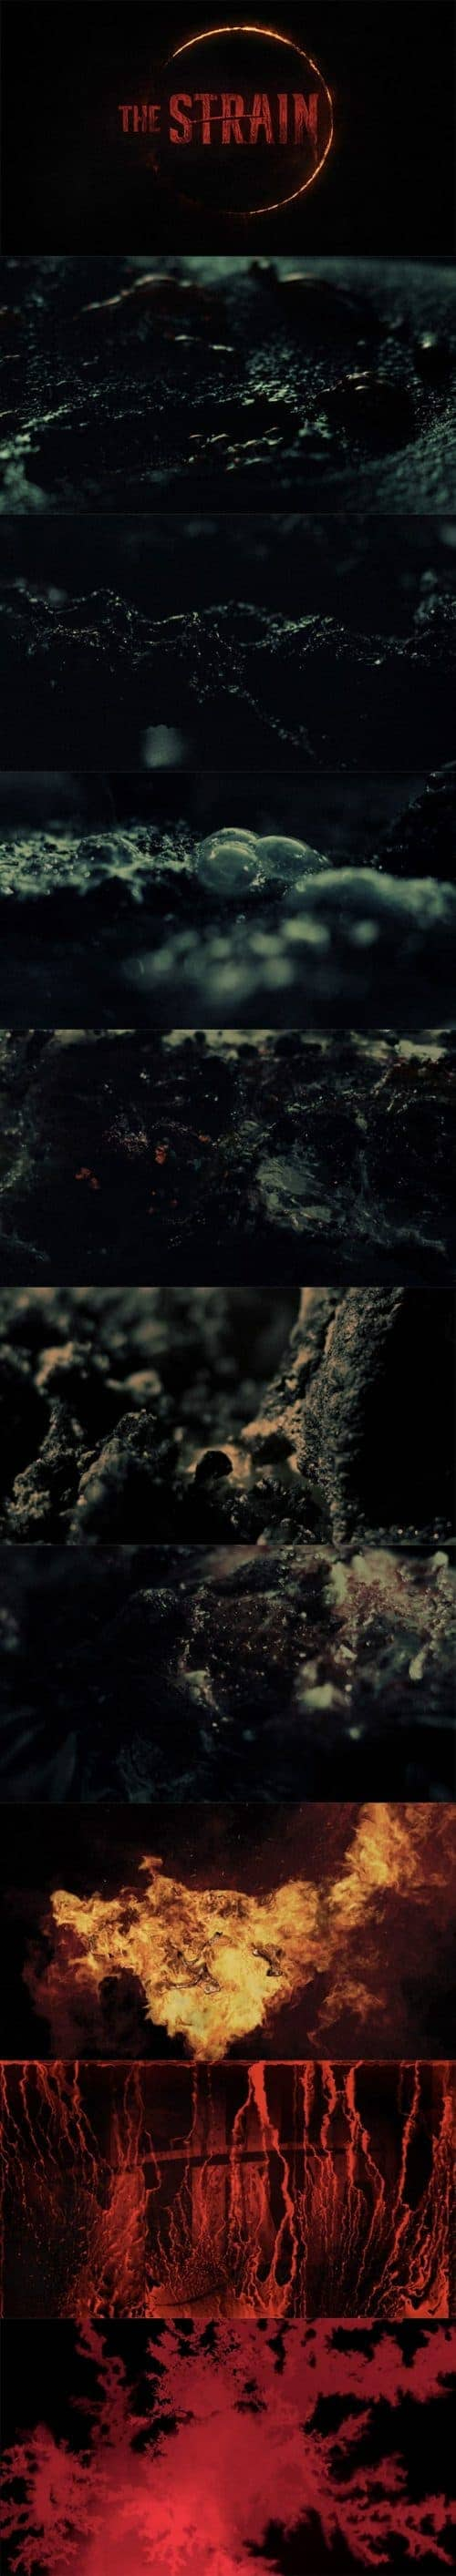 The-Strain-Title-Sequence